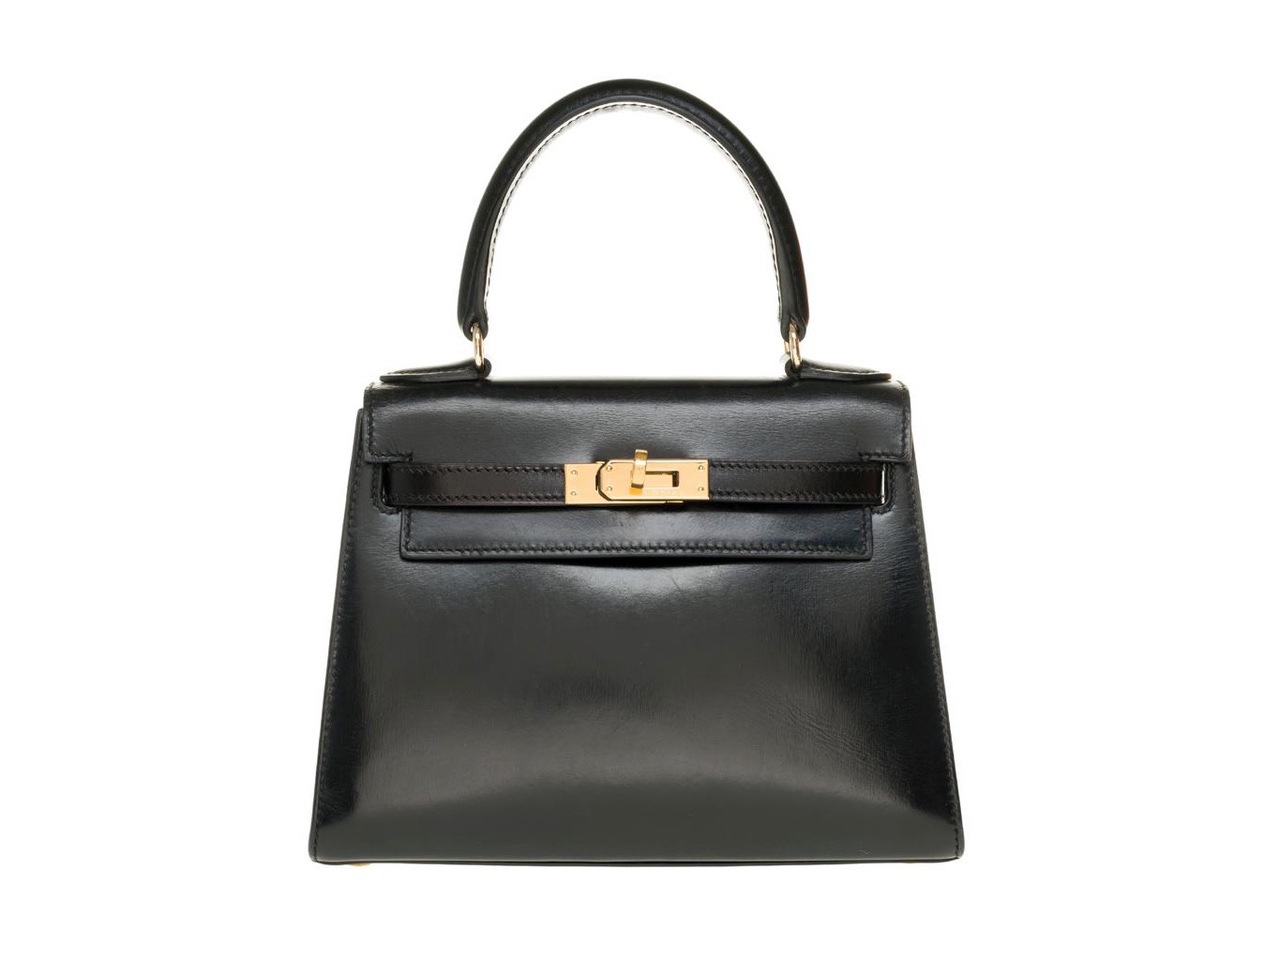 Hermès-Mini-Kelly-20-Black-2-1